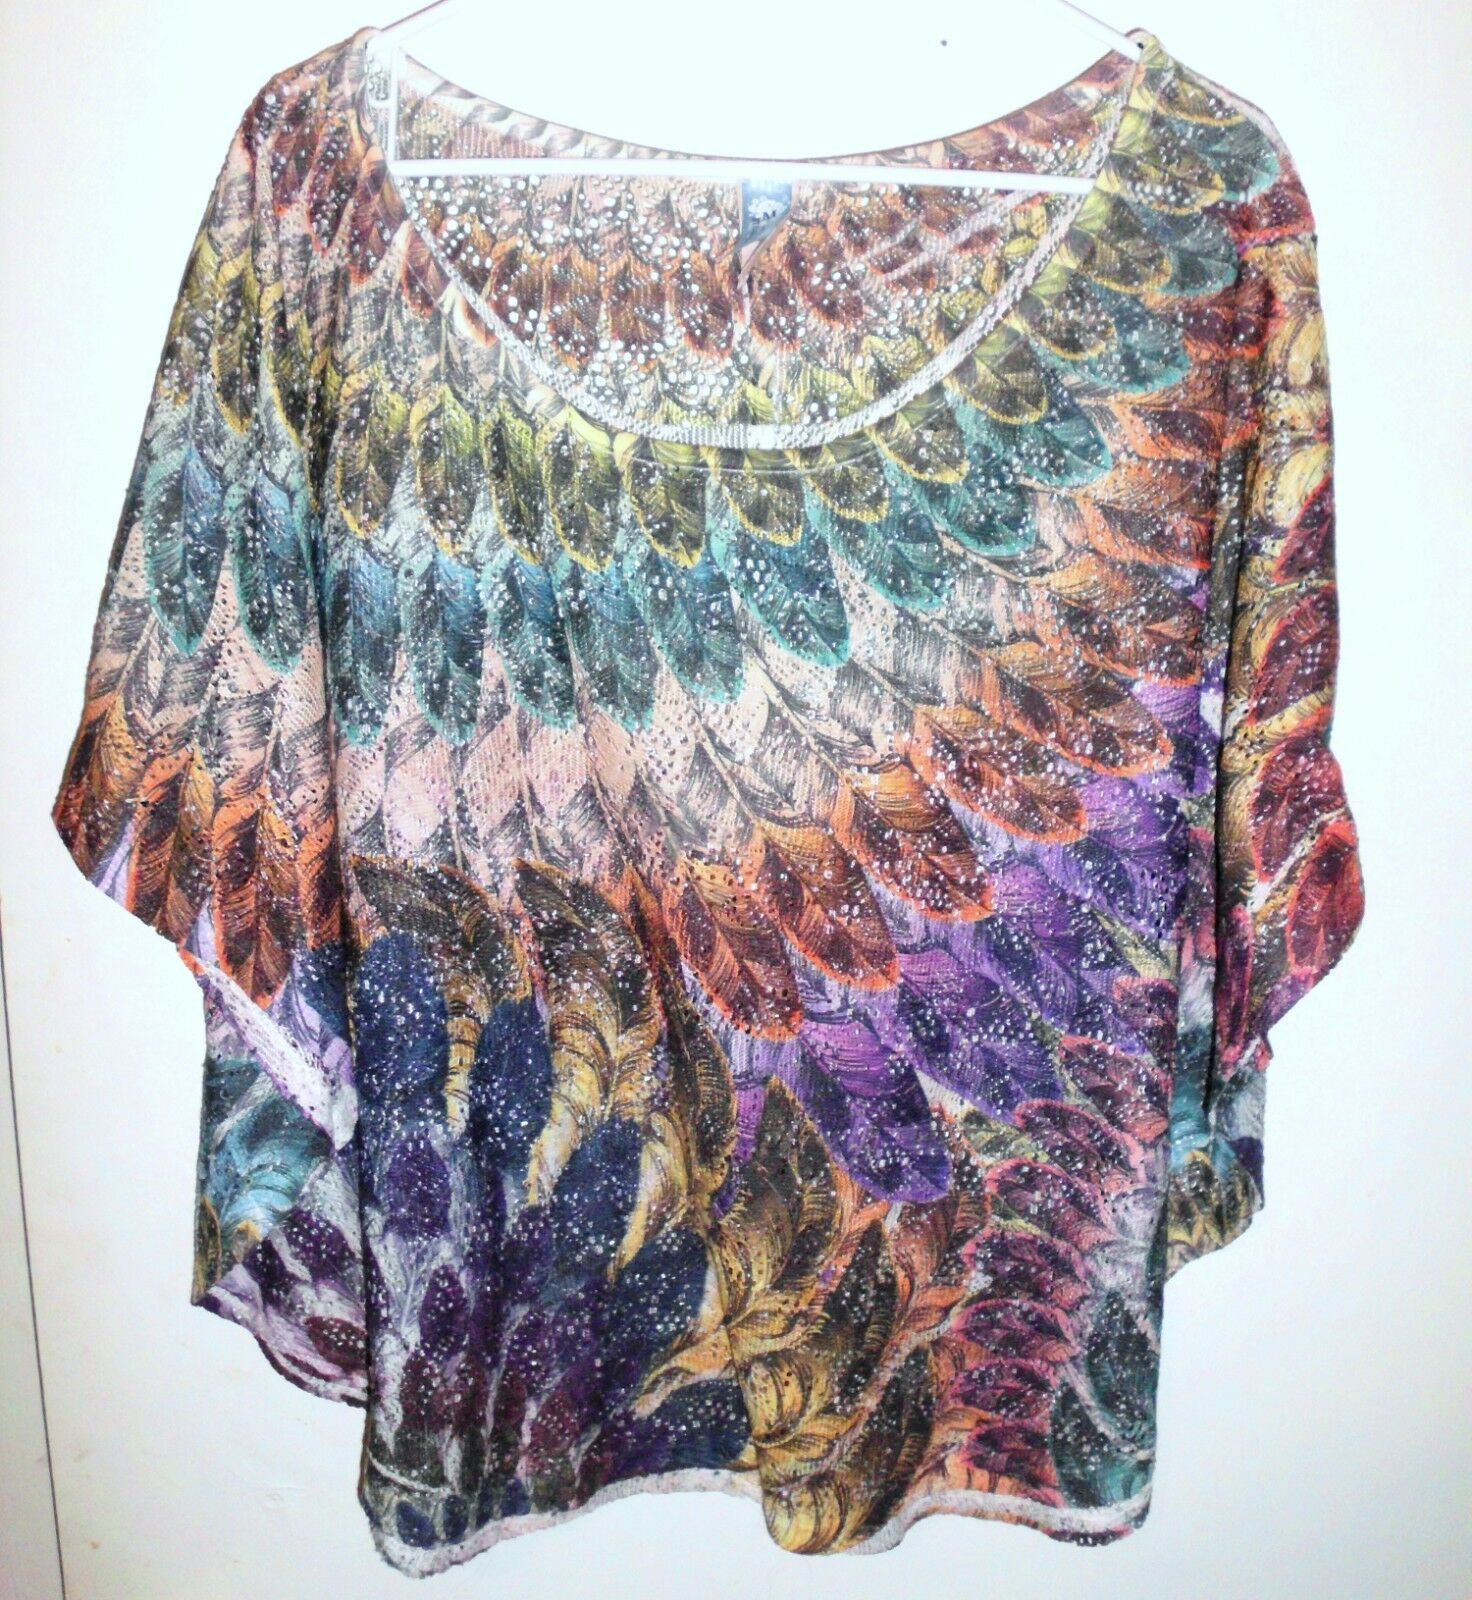 Primary image for M. FASIS Shirt Plus 2X Women Sheer Lace Feathers Dolman Sleeves Purple Orange